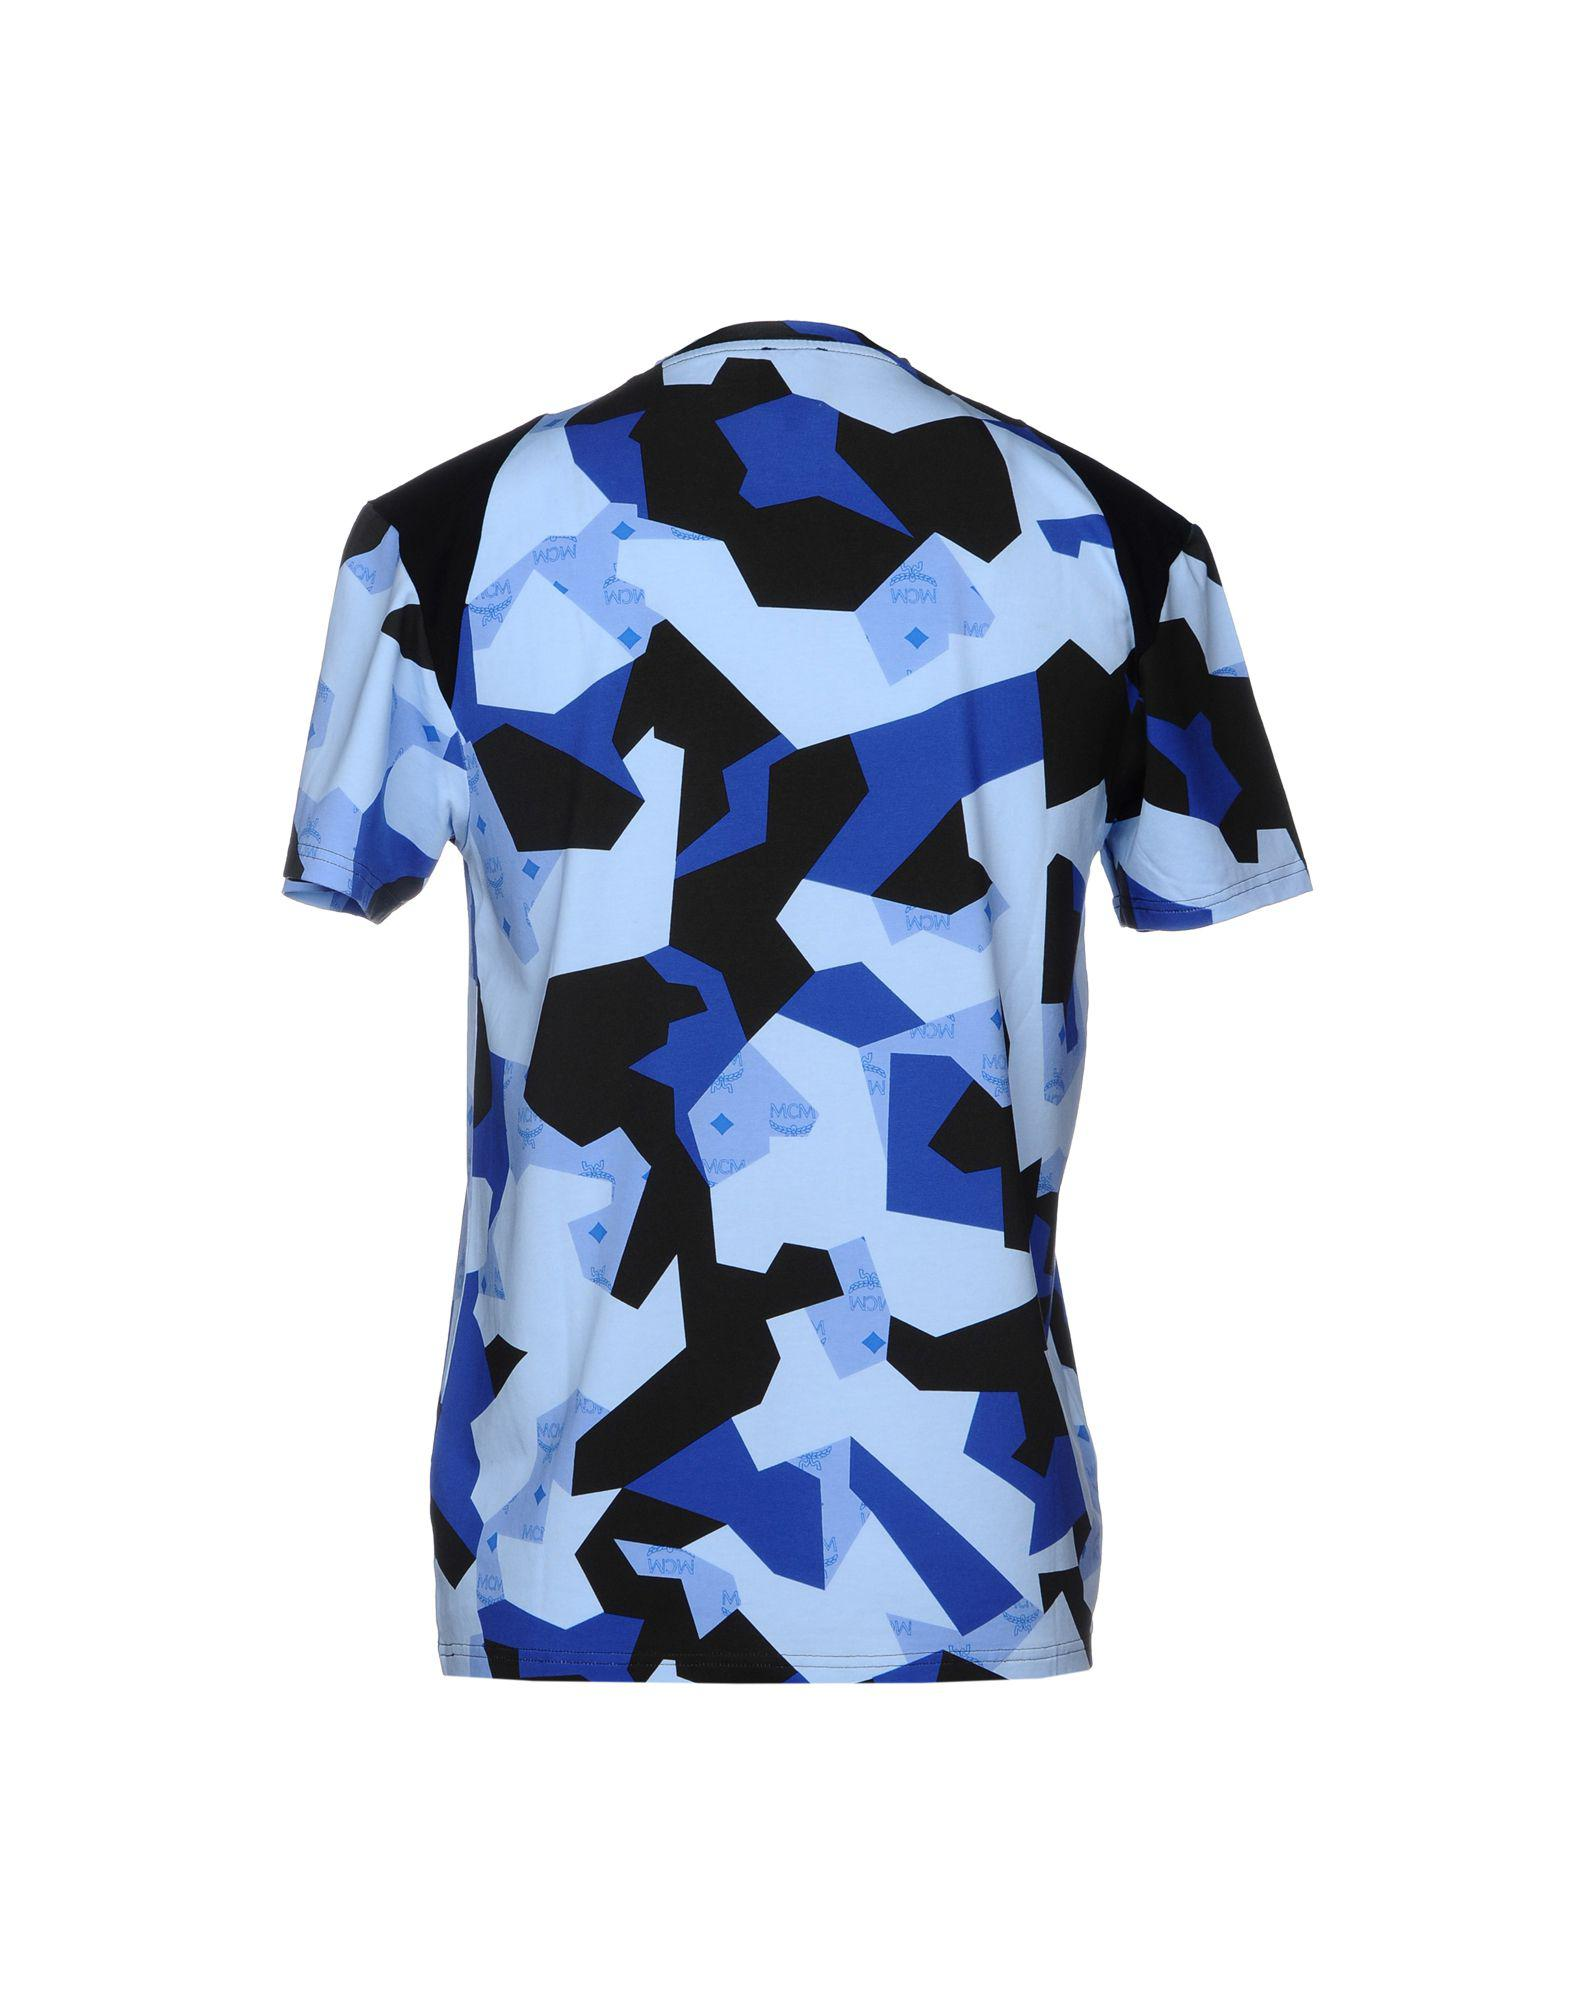 77b526f96 Mcm T-shirt in Blue for Men - Lyst